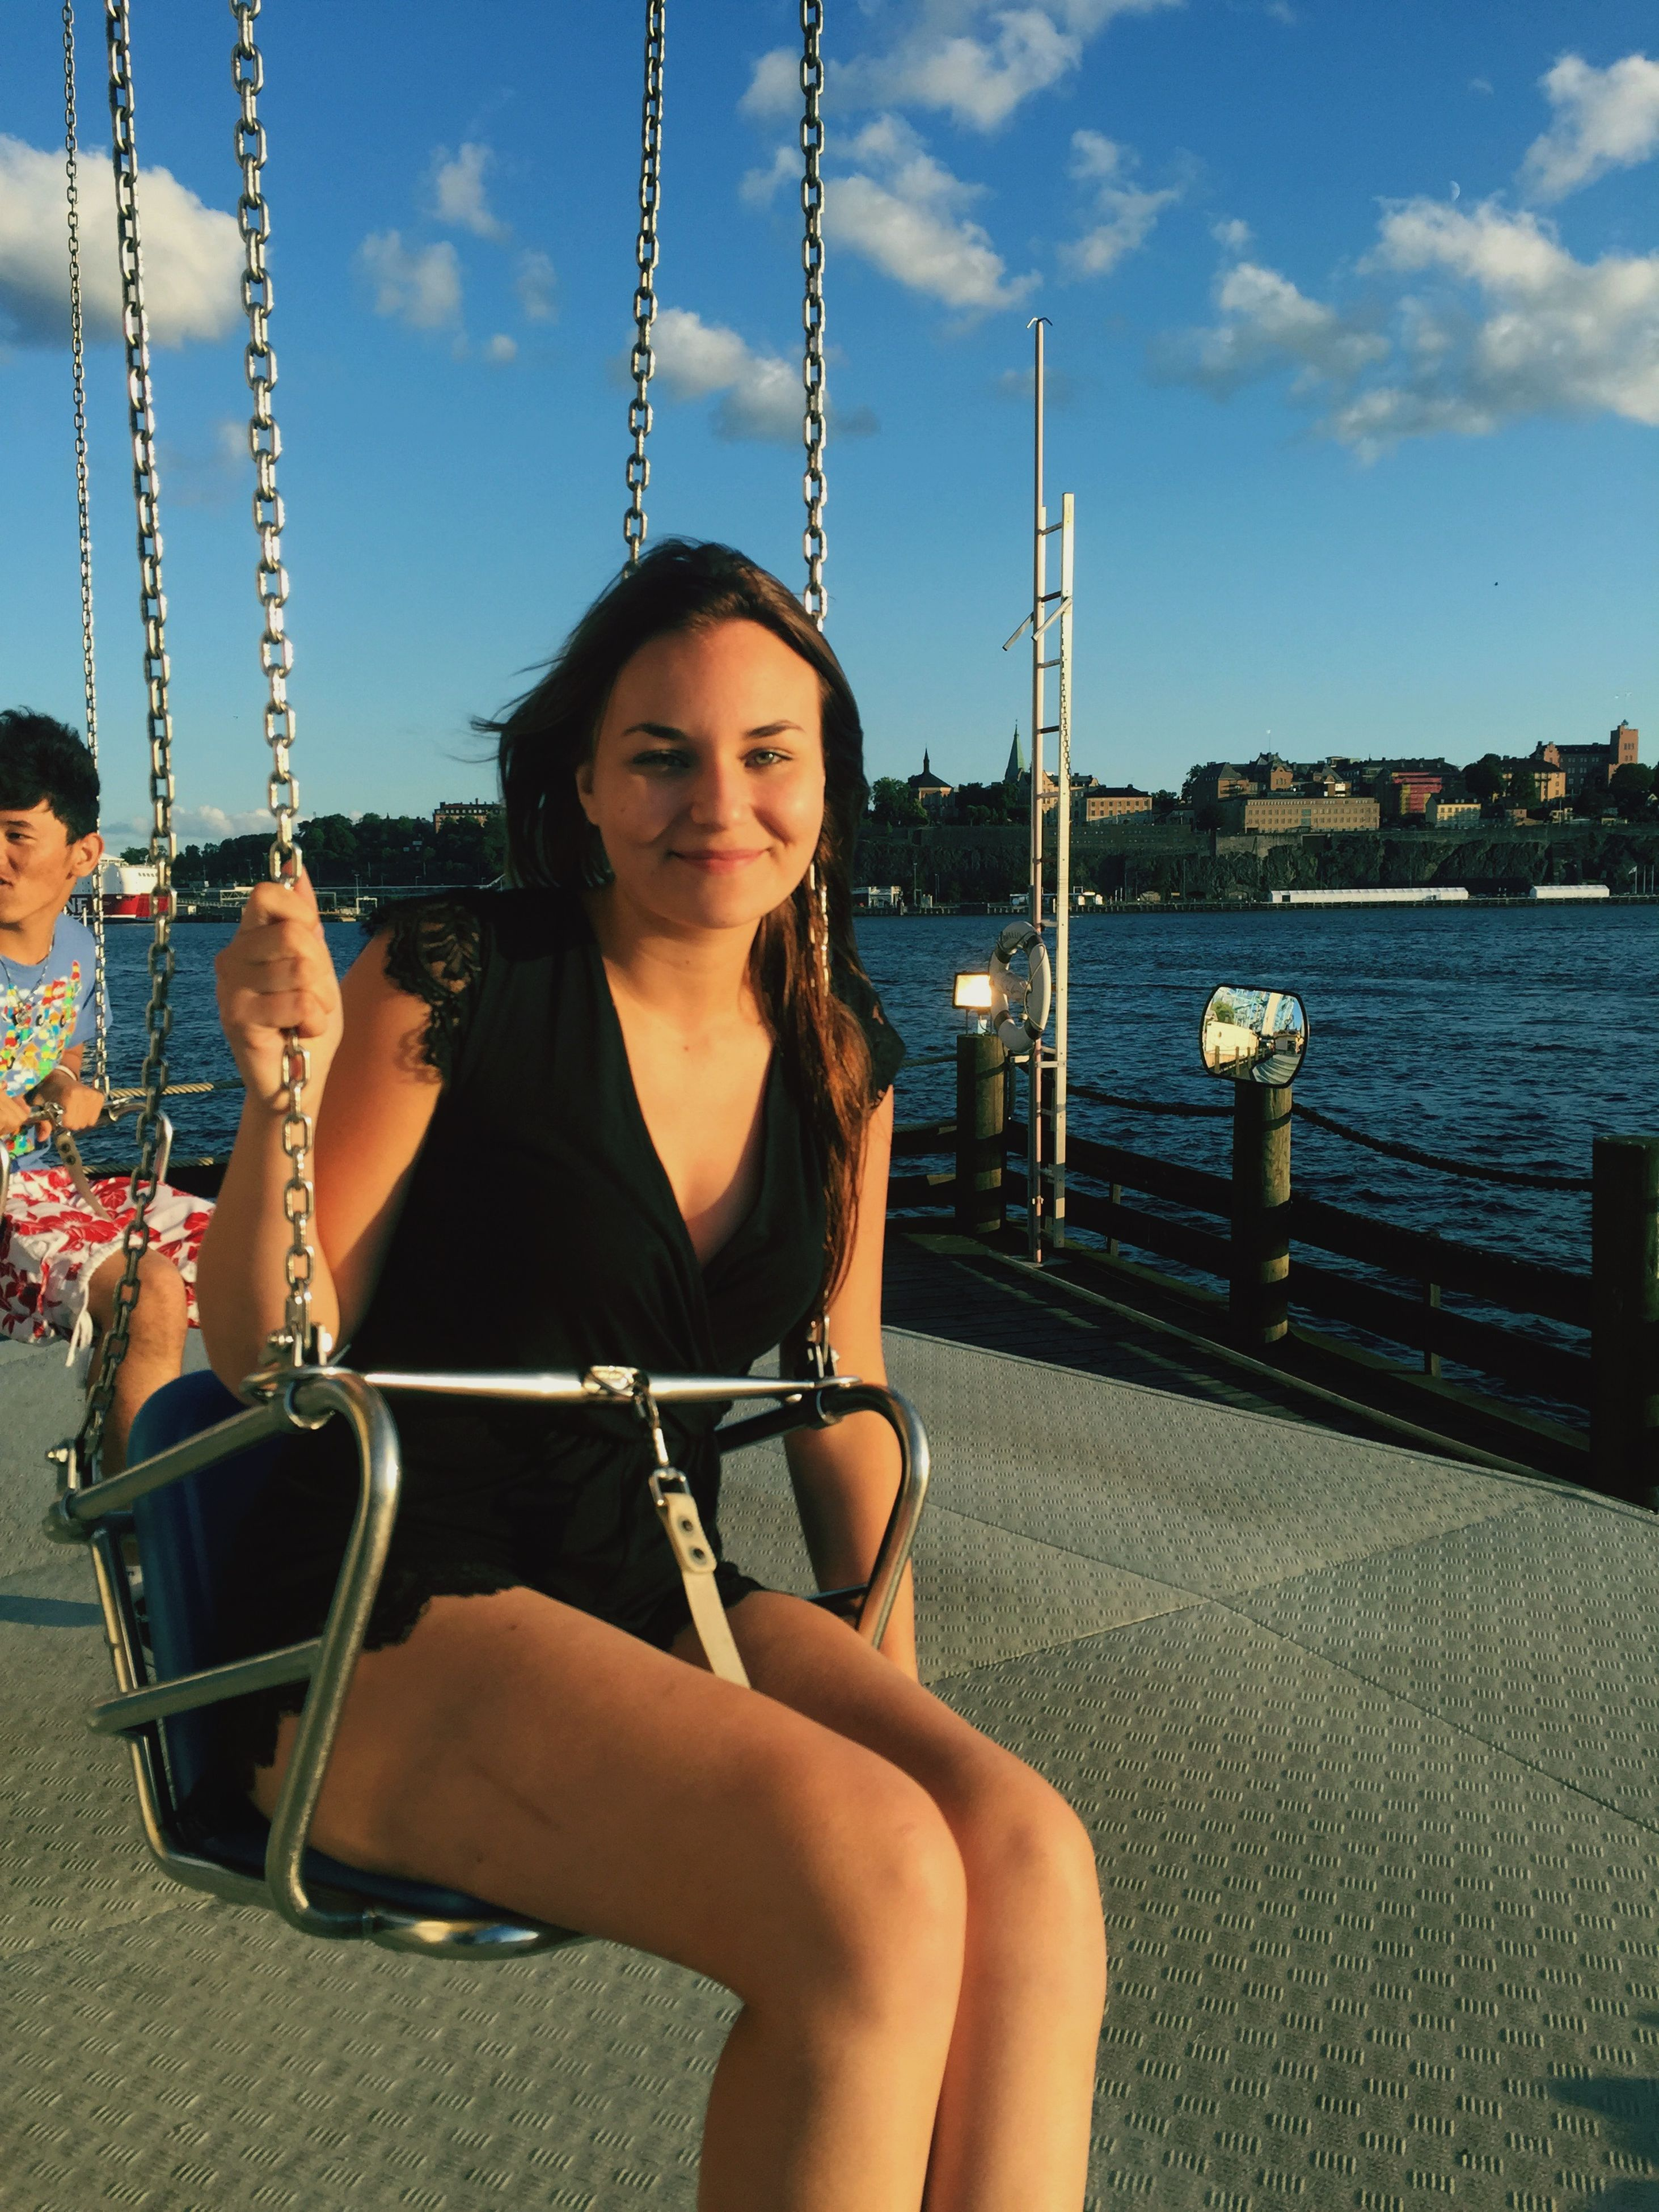 young adult, lifestyles, young women, leisure activity, person, water, casual clothing, looking at camera, portrait, front view, sunglasses, sitting, transportation, standing, nautical vessel, built structure, sky